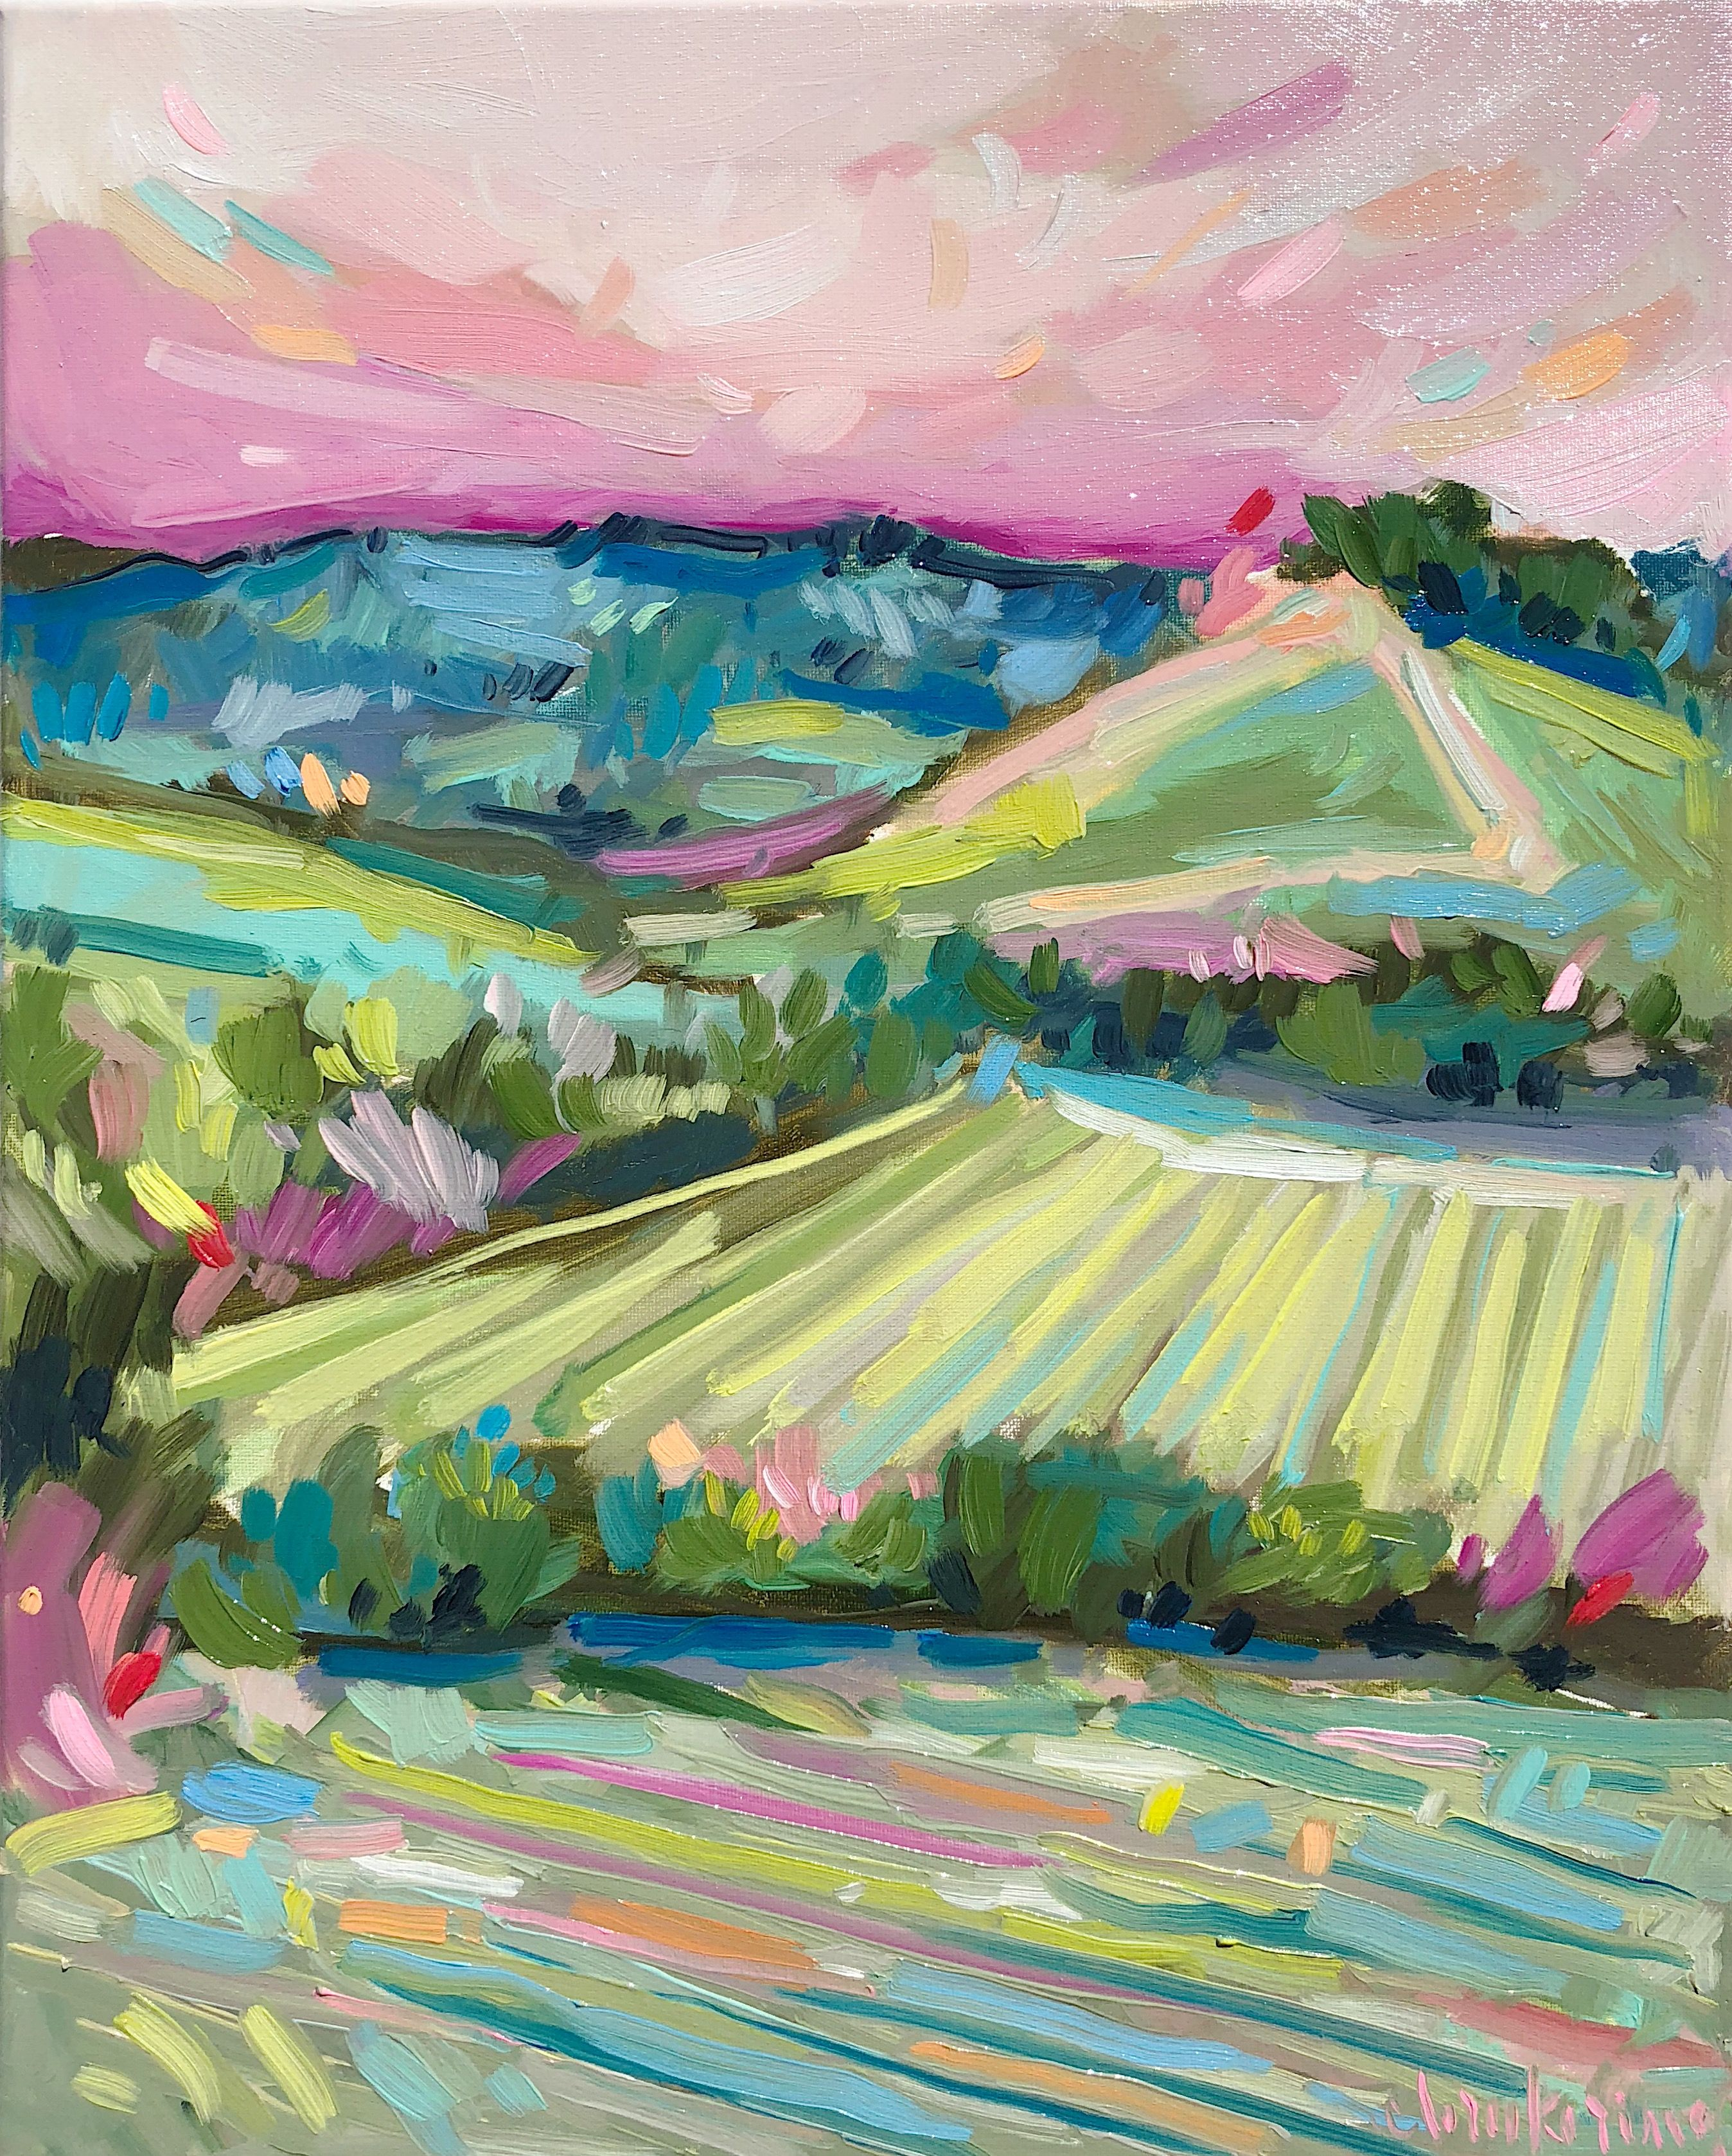 Ciao Bella C Brooke Ring Landscape Painting Italian Countryside Tuscany Painting Col Countryside Paintings Abstract Art Landscape Canvas Painting Diy